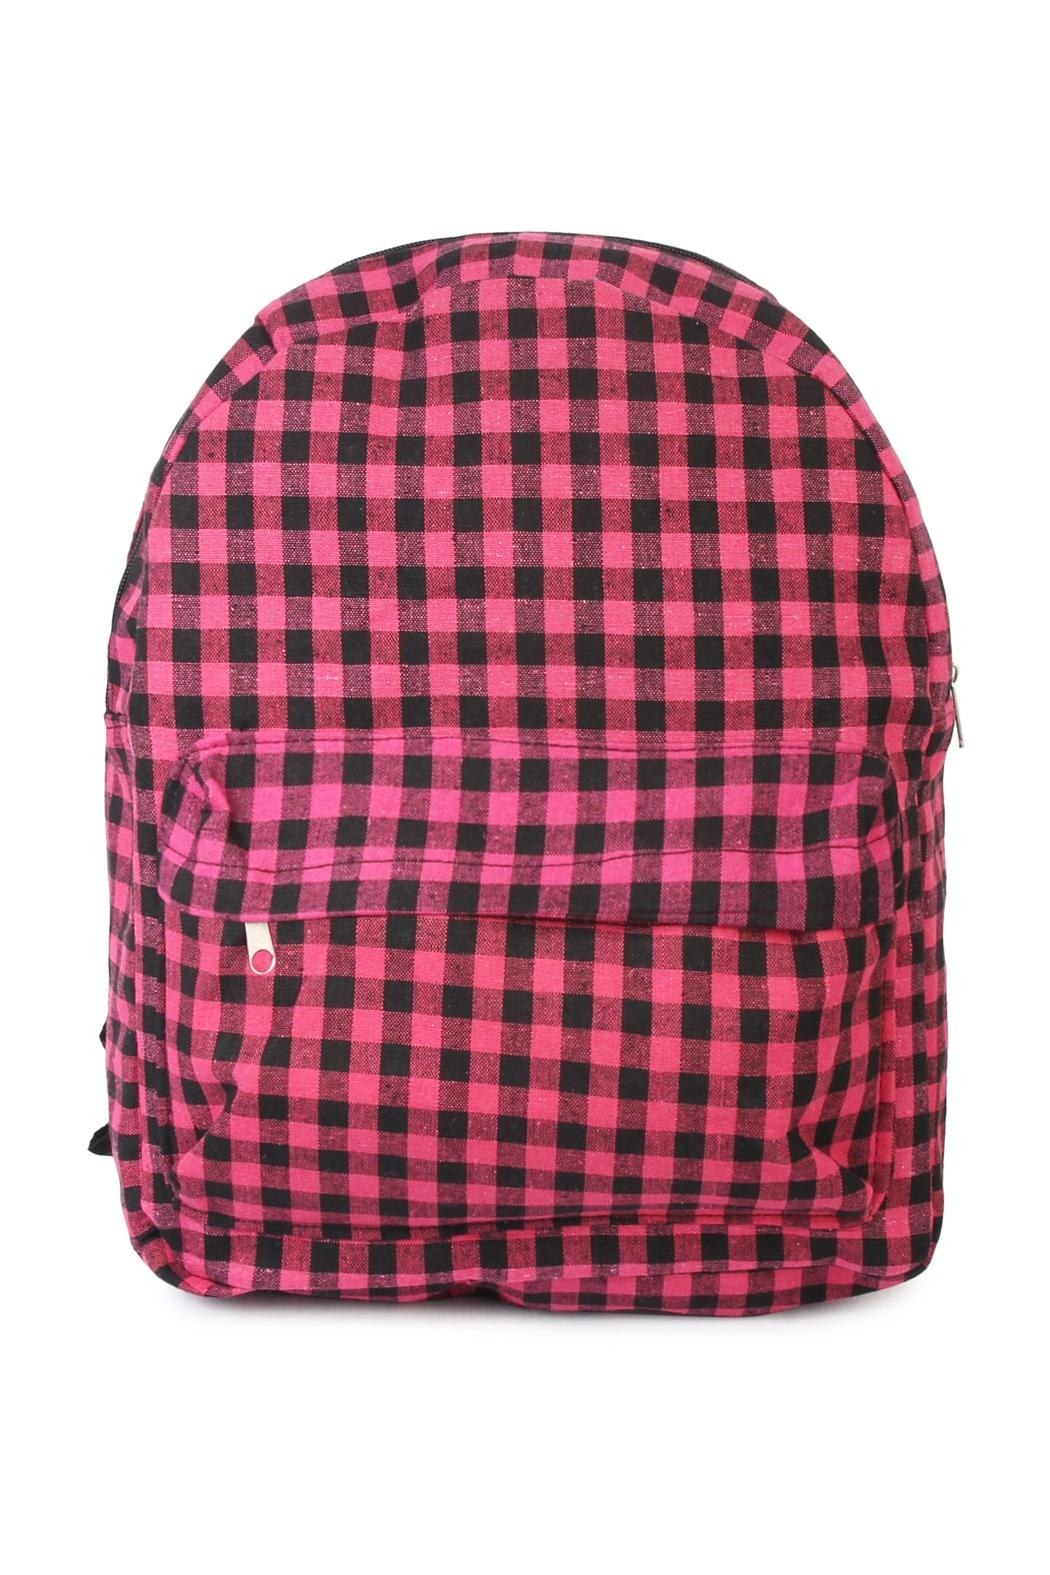 Riah Fashion Pink Checkered Backpack - Main Image